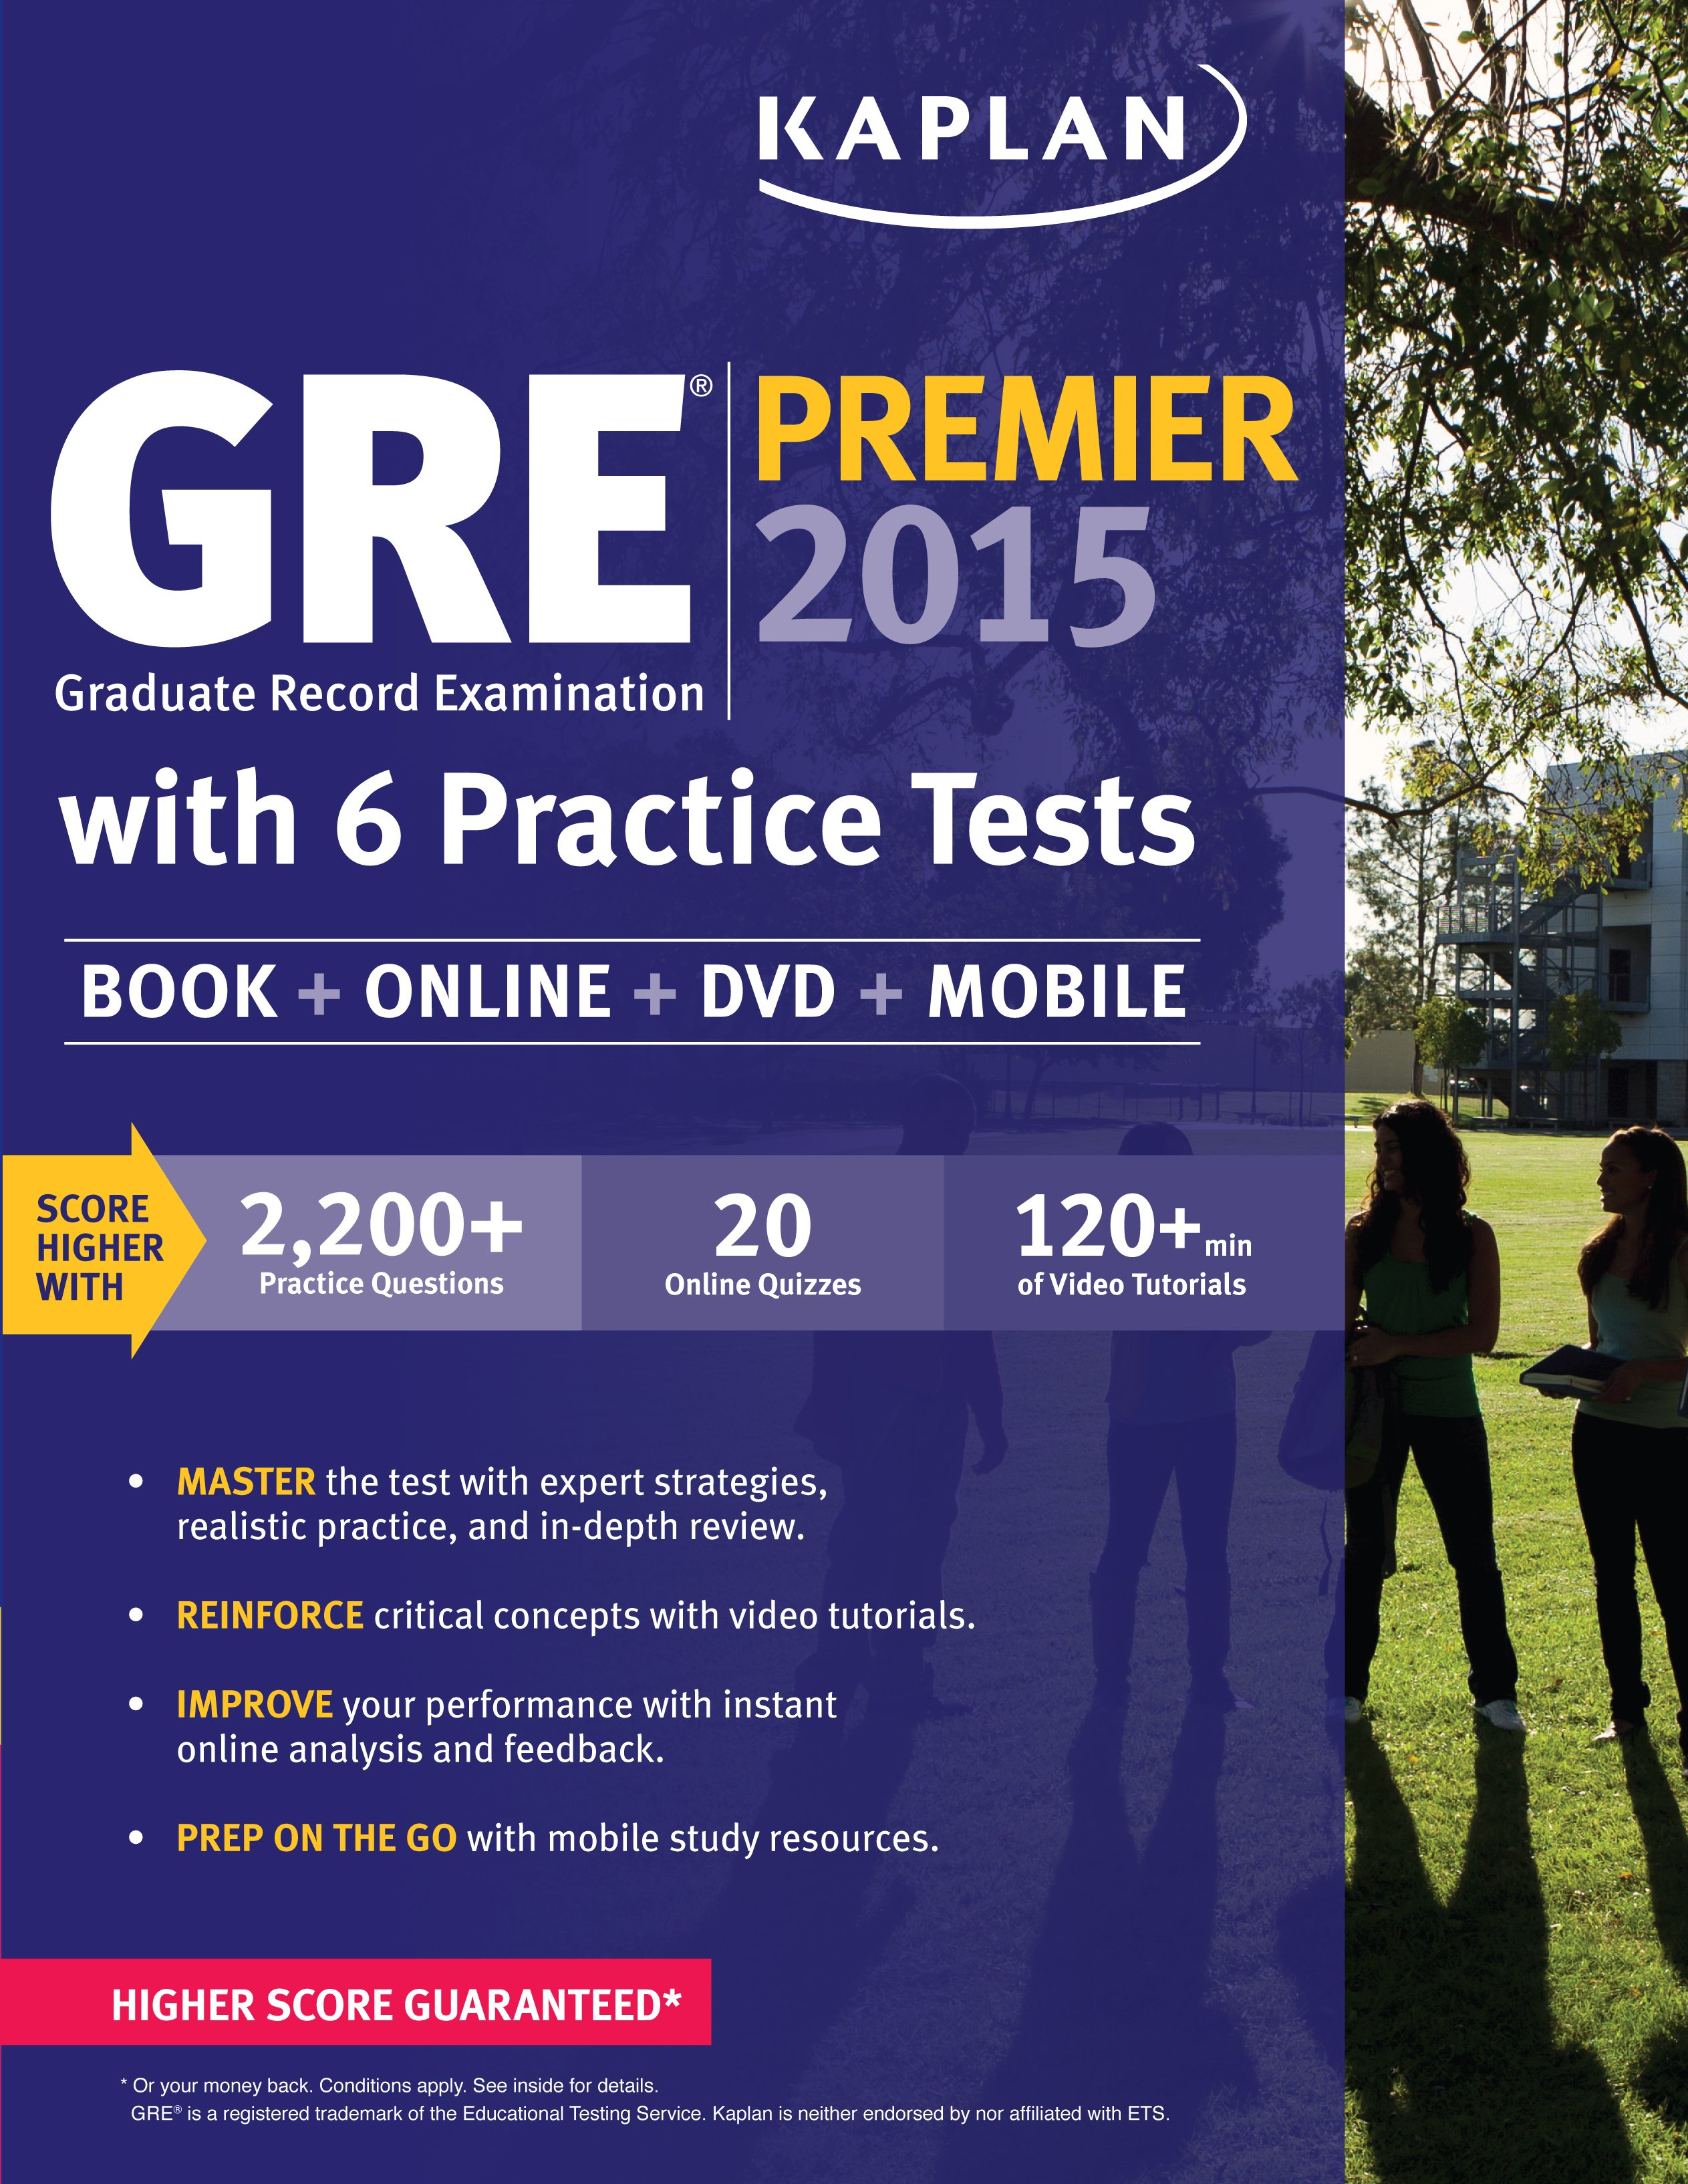 Gre® Premier 2015 With 6 Practice Tests Book + Dvd. Radiation Therapy Schools In Arizona. Houston Texas Dentists Boston Cooking Schools. What Is Internet Marketing Dr Charles Messa. How Much Does A Social Worker Earn. Personal Liability Insurance For Nurses. Best Foods For Wrinkles Suny Fredonia College. Main Street Tire And Auto Stratex Oil And Gas. Banks In Bradenton Florida Free Redit Report